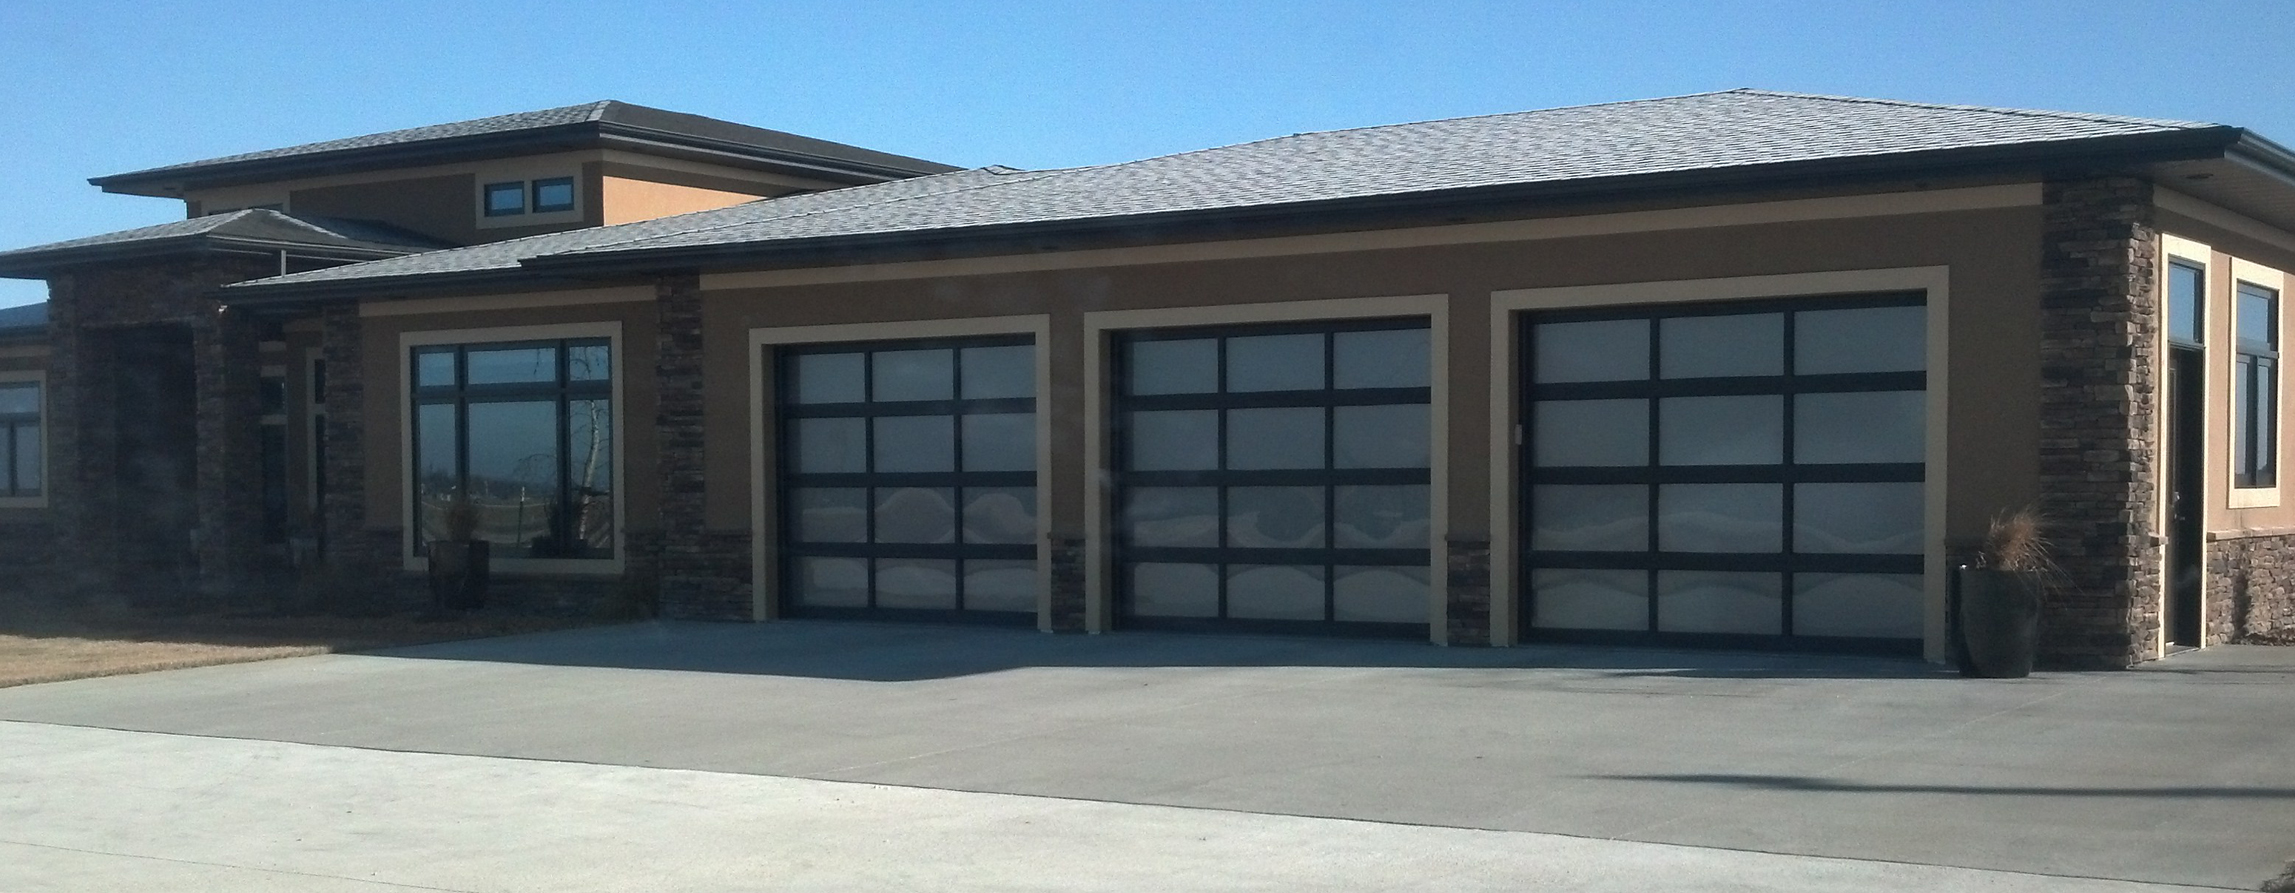 coprorate-garage-door-repair-lake-havasu